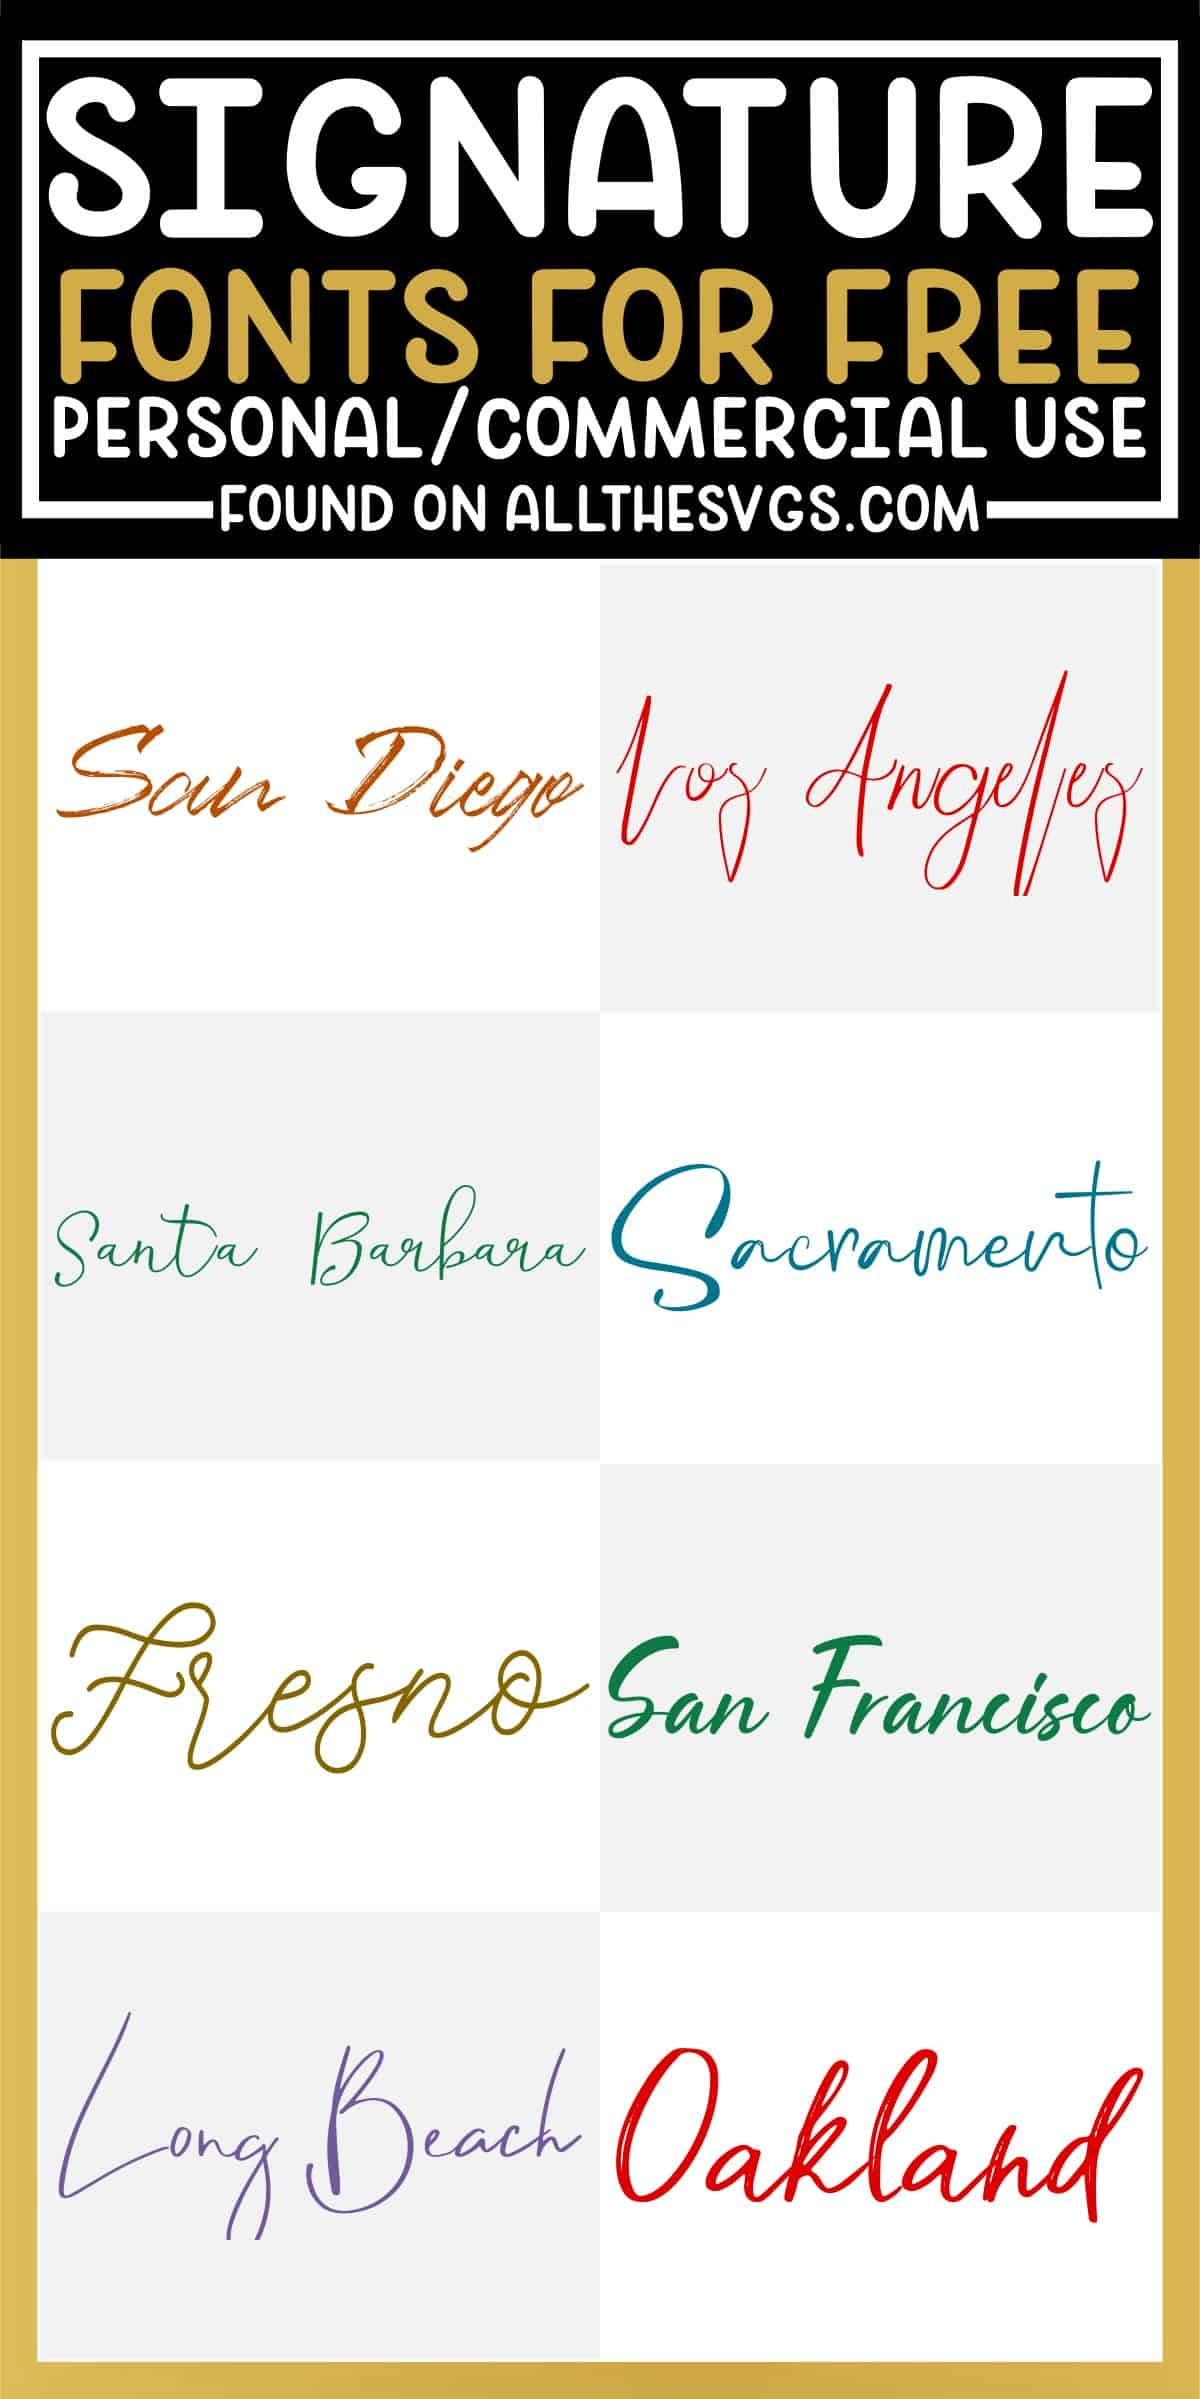 showcase of 8 best free signature fonts for commercial use.